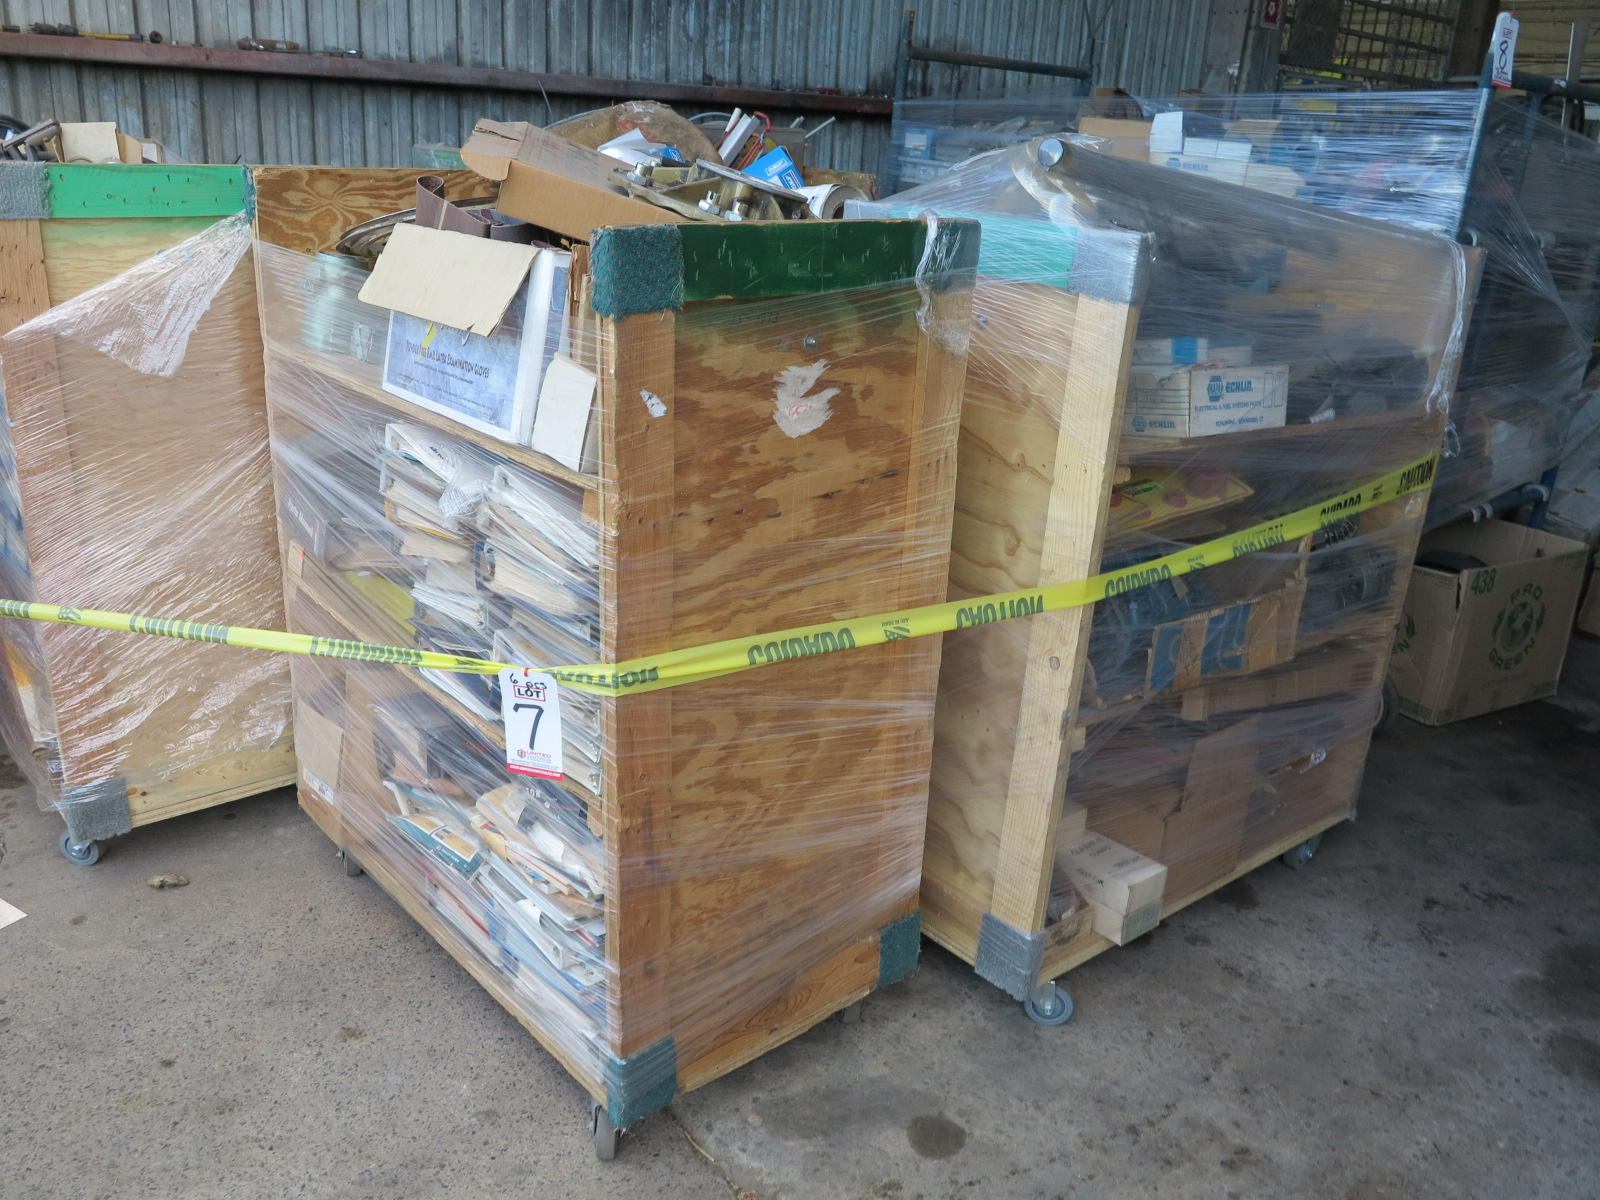 LOT - (6) CARTS TO CONTAIN: JACKHAMMER BITS, AUTOMOTIVE AND RELATED ITEMS - Image 2 of 5